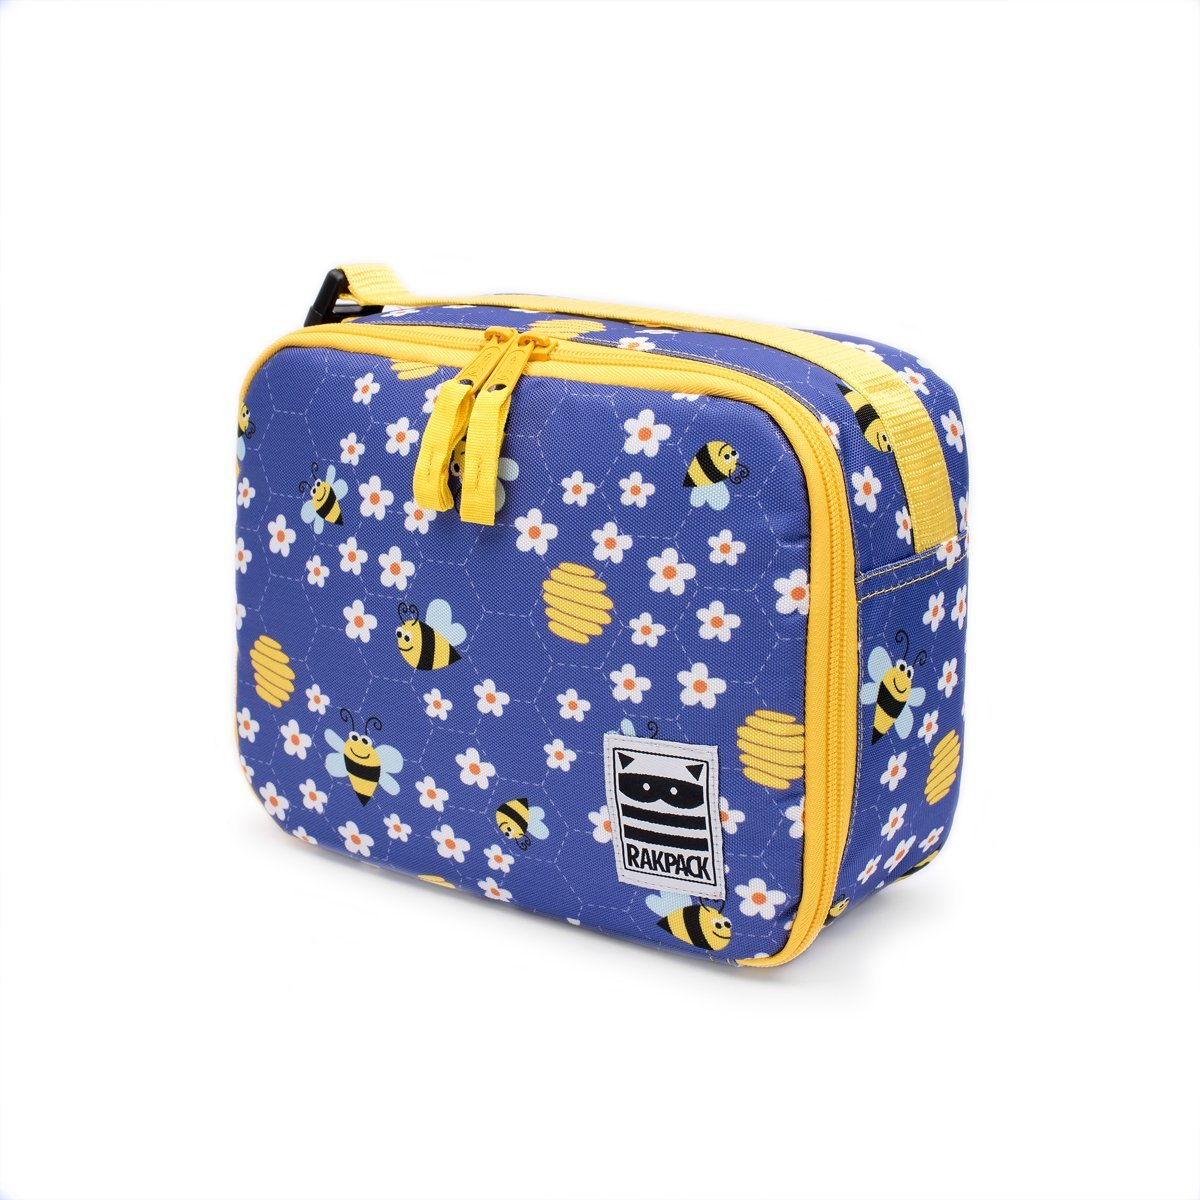 Rakpack Bumble Bee Lunch Box for kids and toddlers, Ultraviolet + Yellow